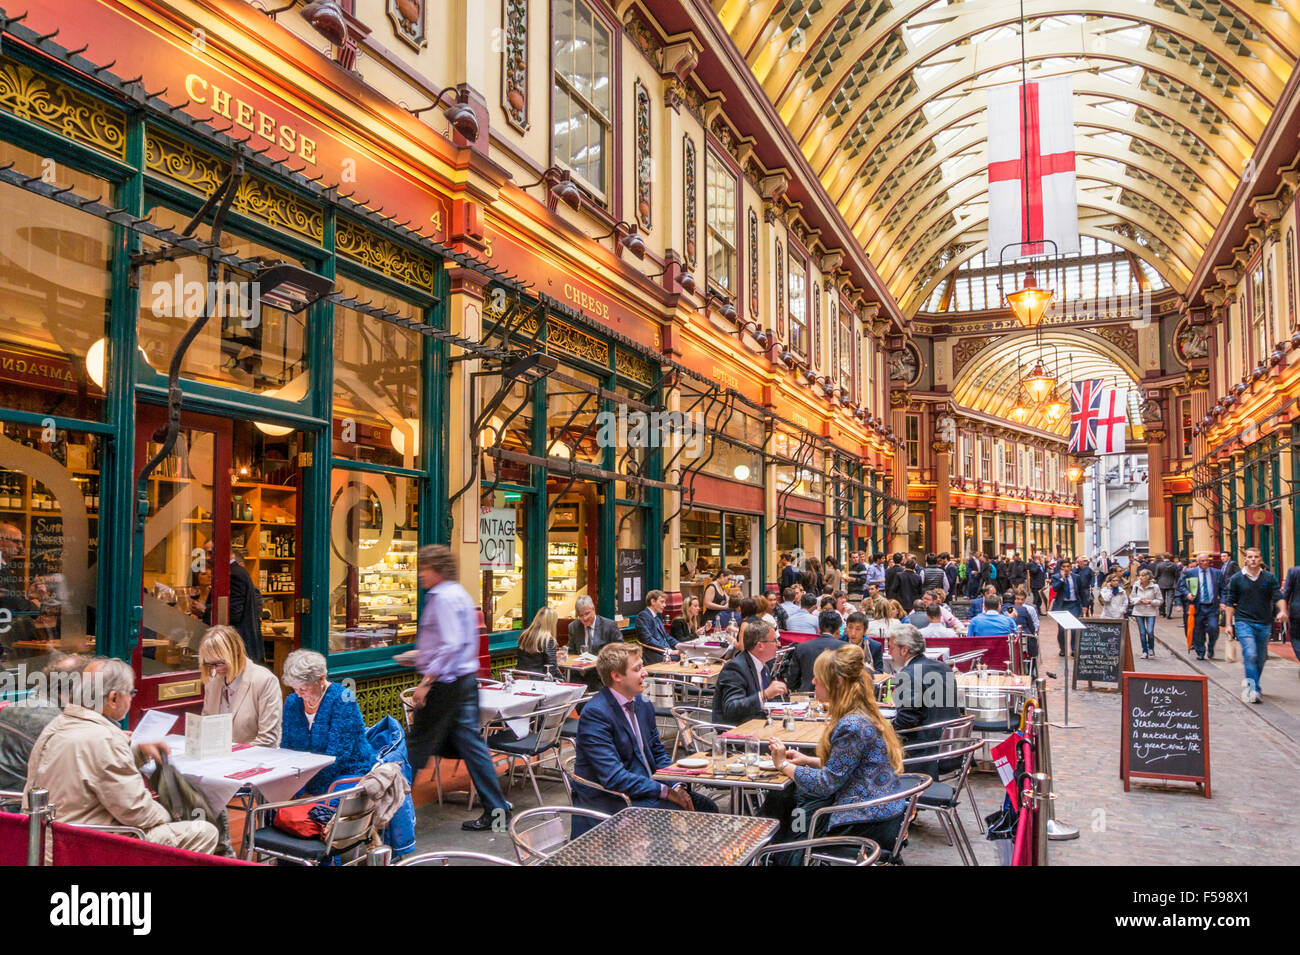 City of London Workers eating and drinking After Work Leadenhall Market City of  London, England UK GB EU Europe - Stock Image